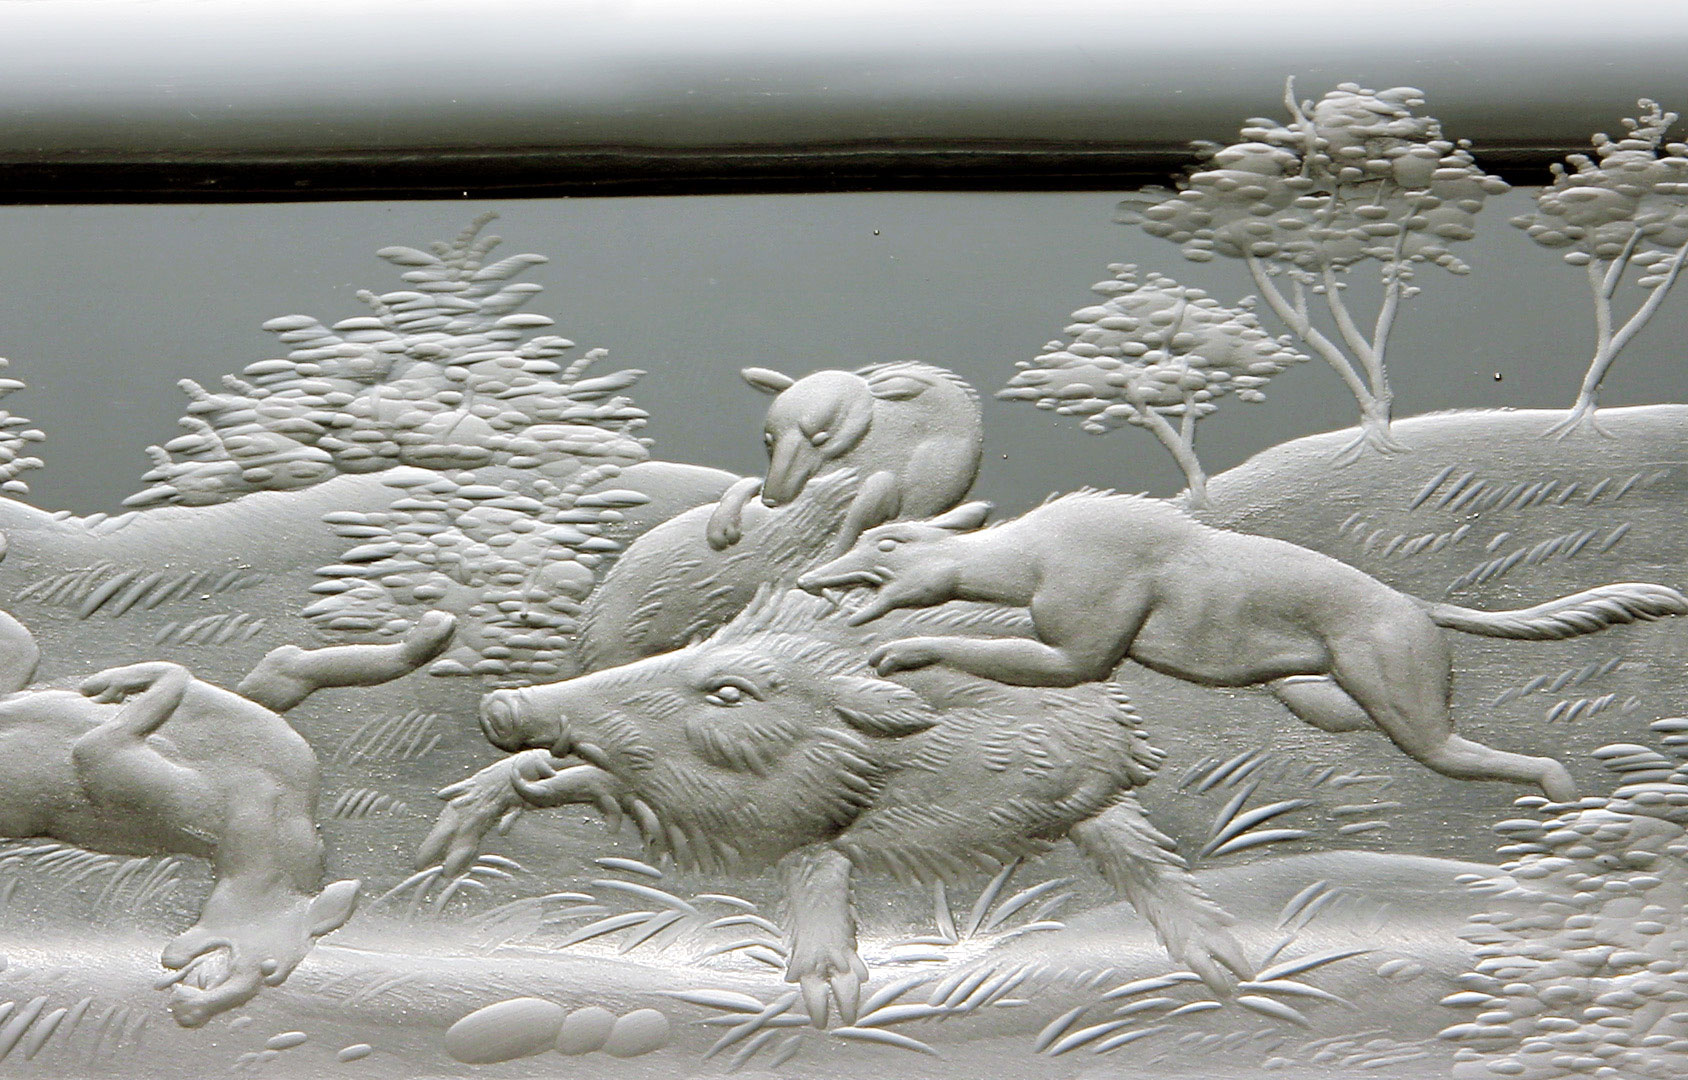 Hunting-engravings-detail